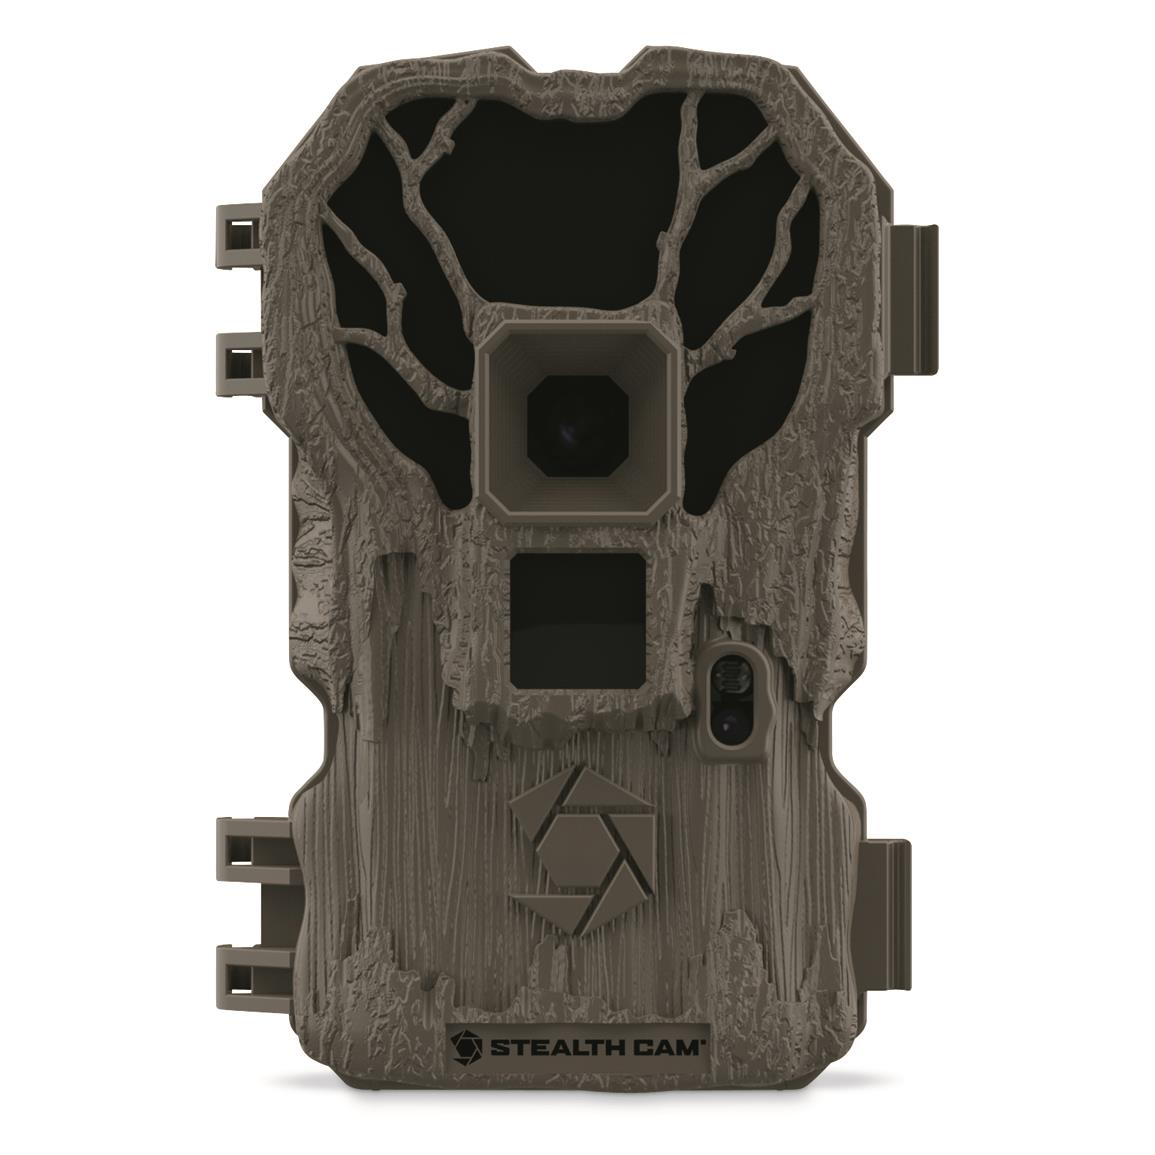 Stealth Cam PXP24 Game/Trail Camera, 20MP